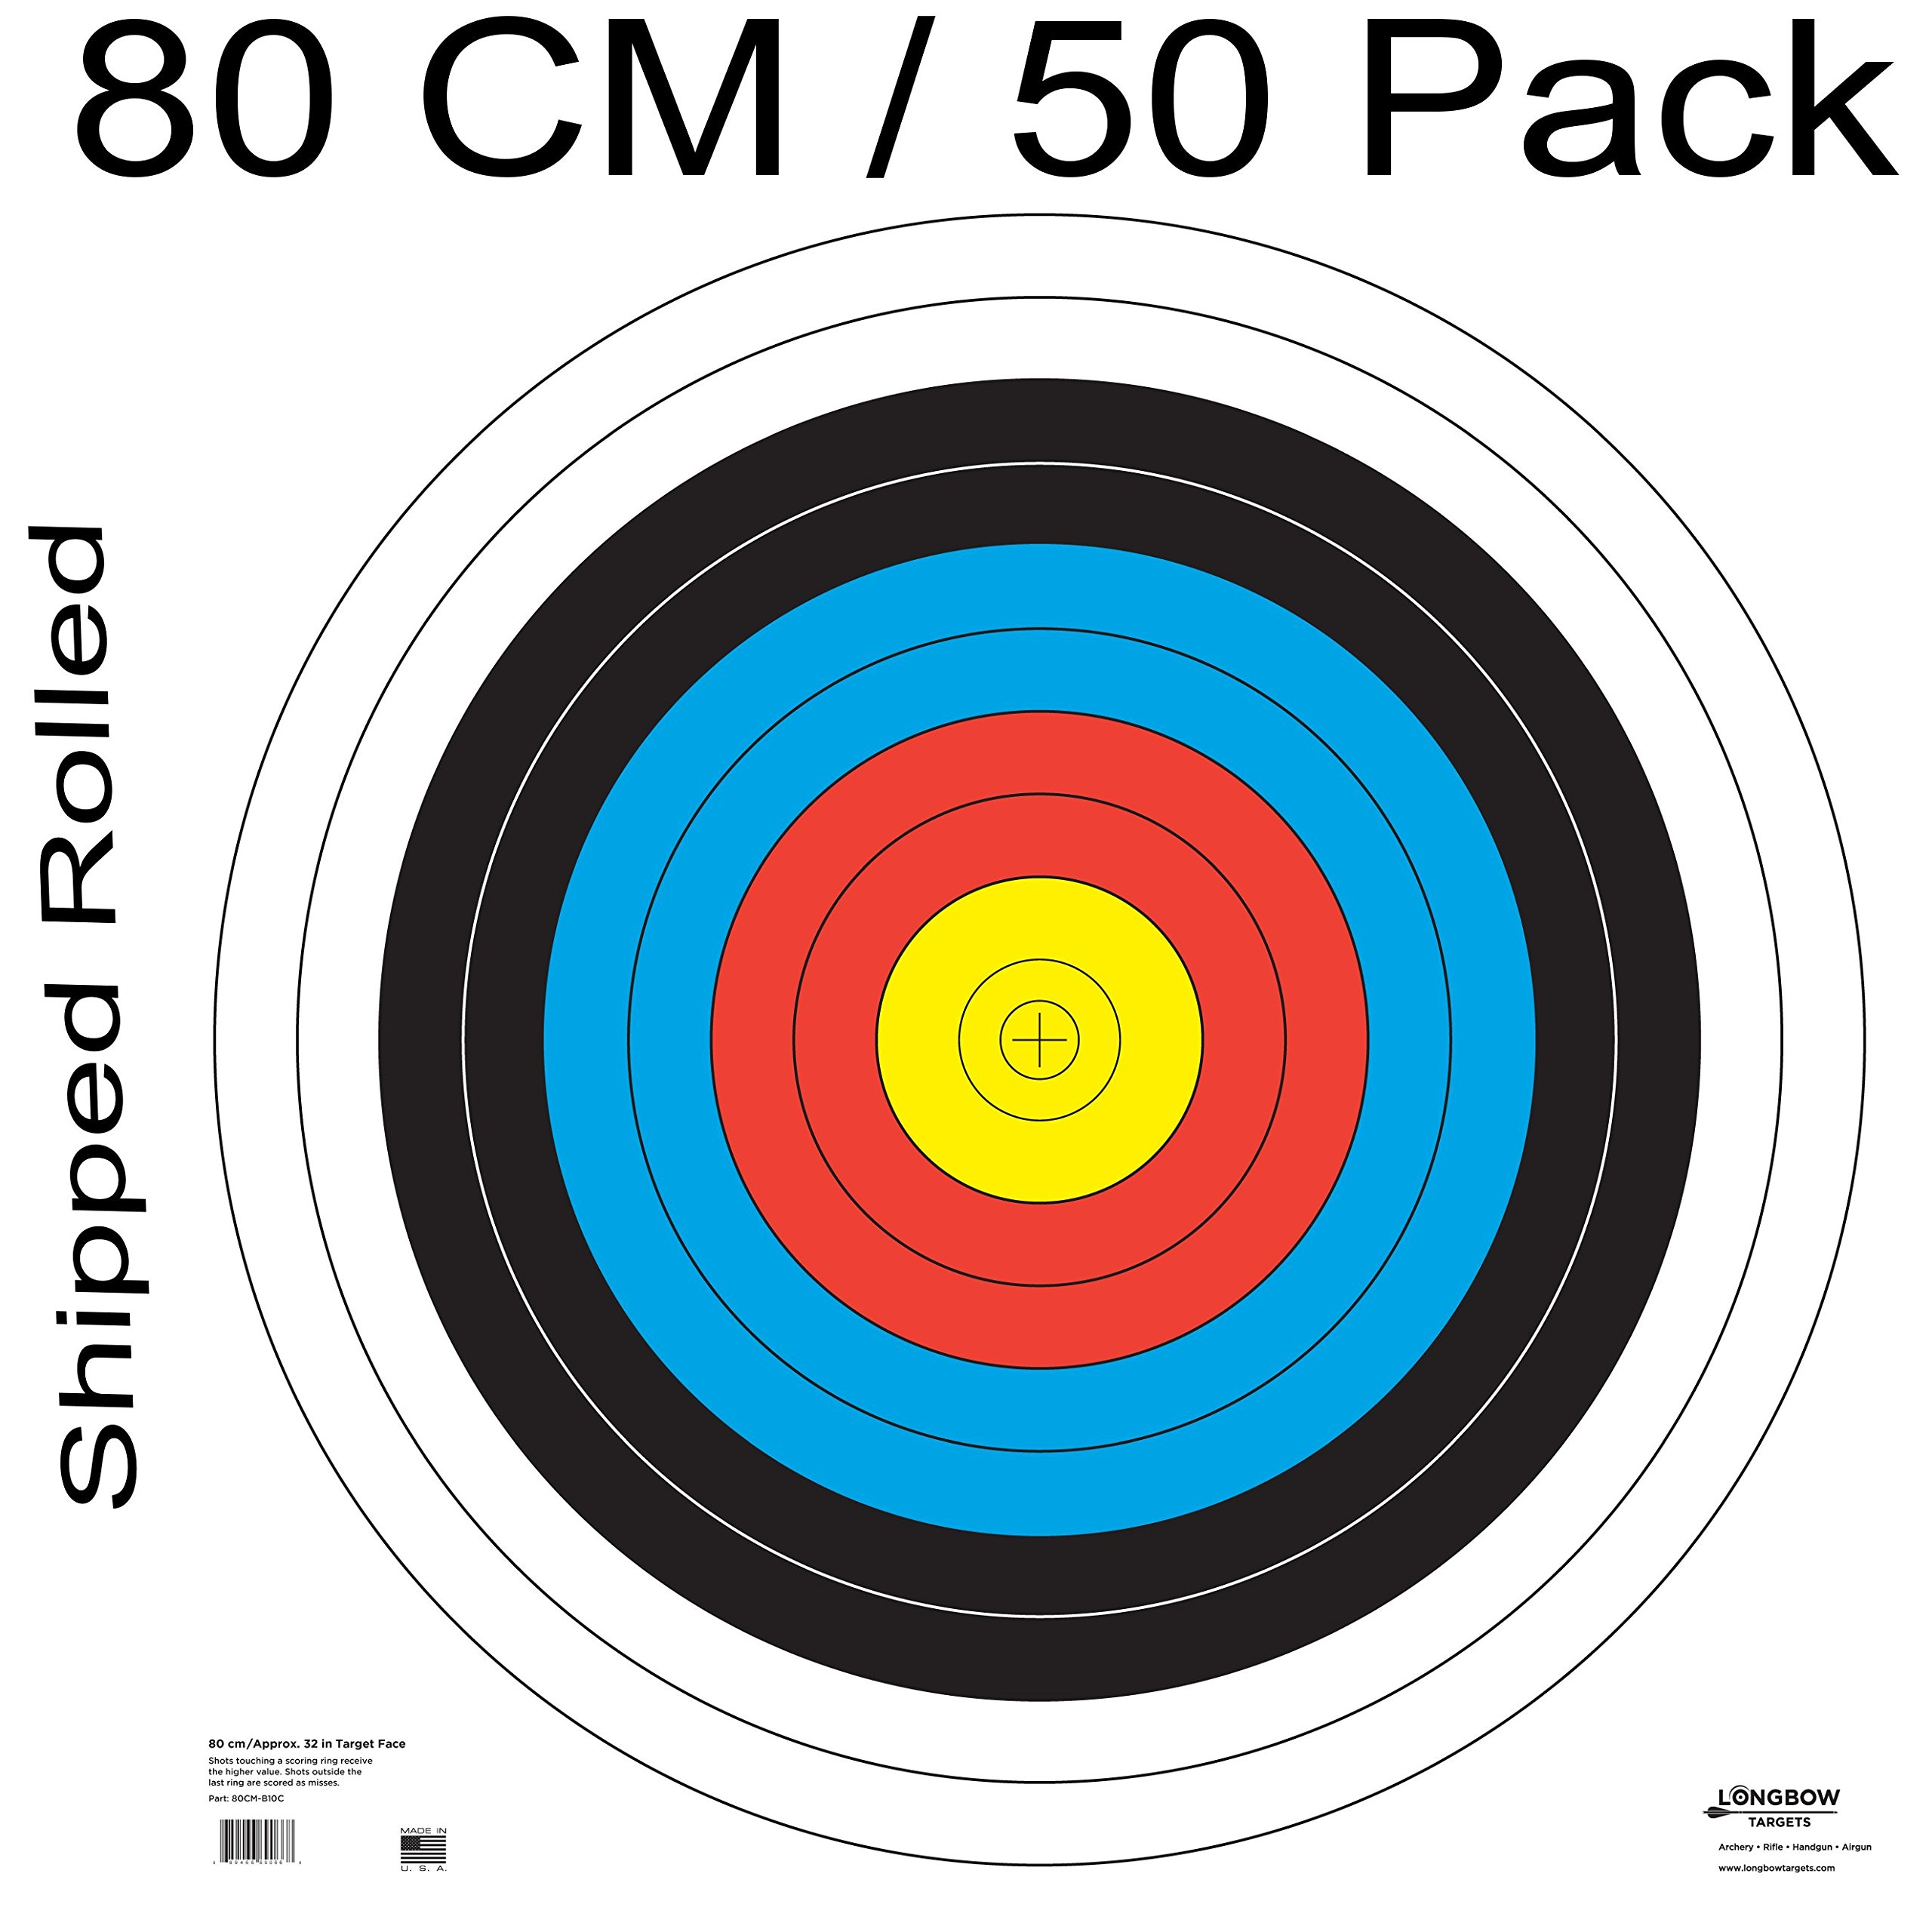 Archery 40cm & 80cm Targets by Longbow (50 pack, 80cm Archery Paper) by Longbow Targets